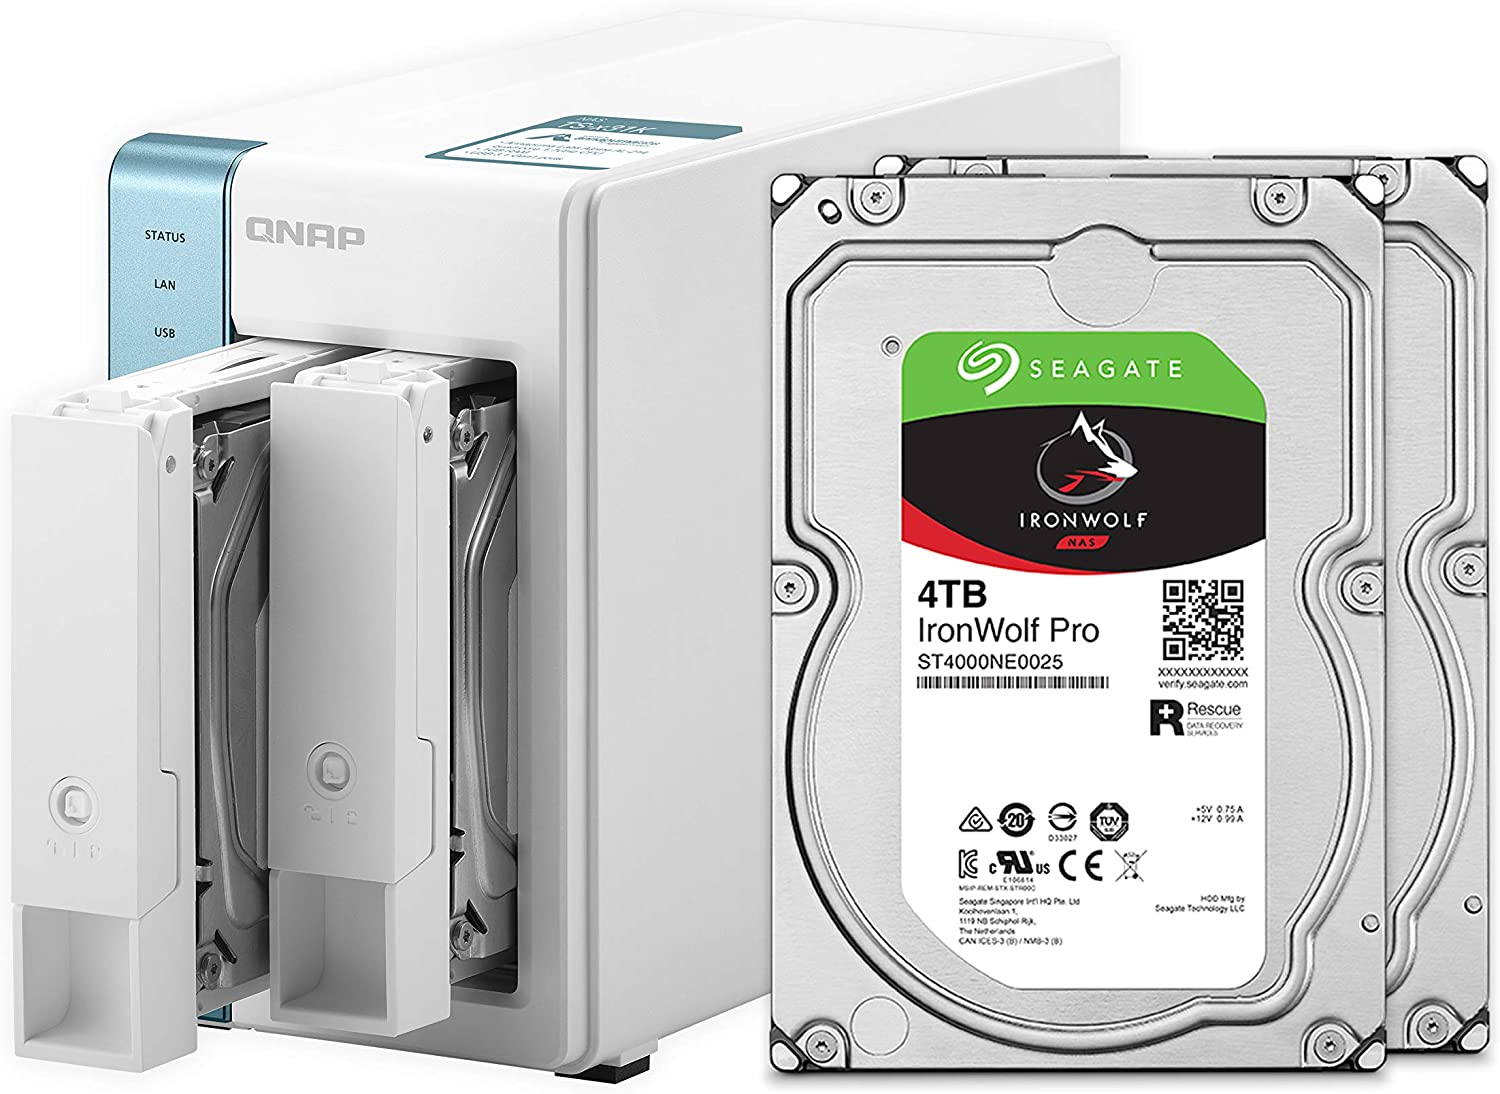 QNAP 2 Bay Home NAS with 4TB Storage Capacity, Preconfigured RAID 1 Seagate IronWolf Drives Bundle,with Two 1GbE Ports (TS-231K-24R-US)